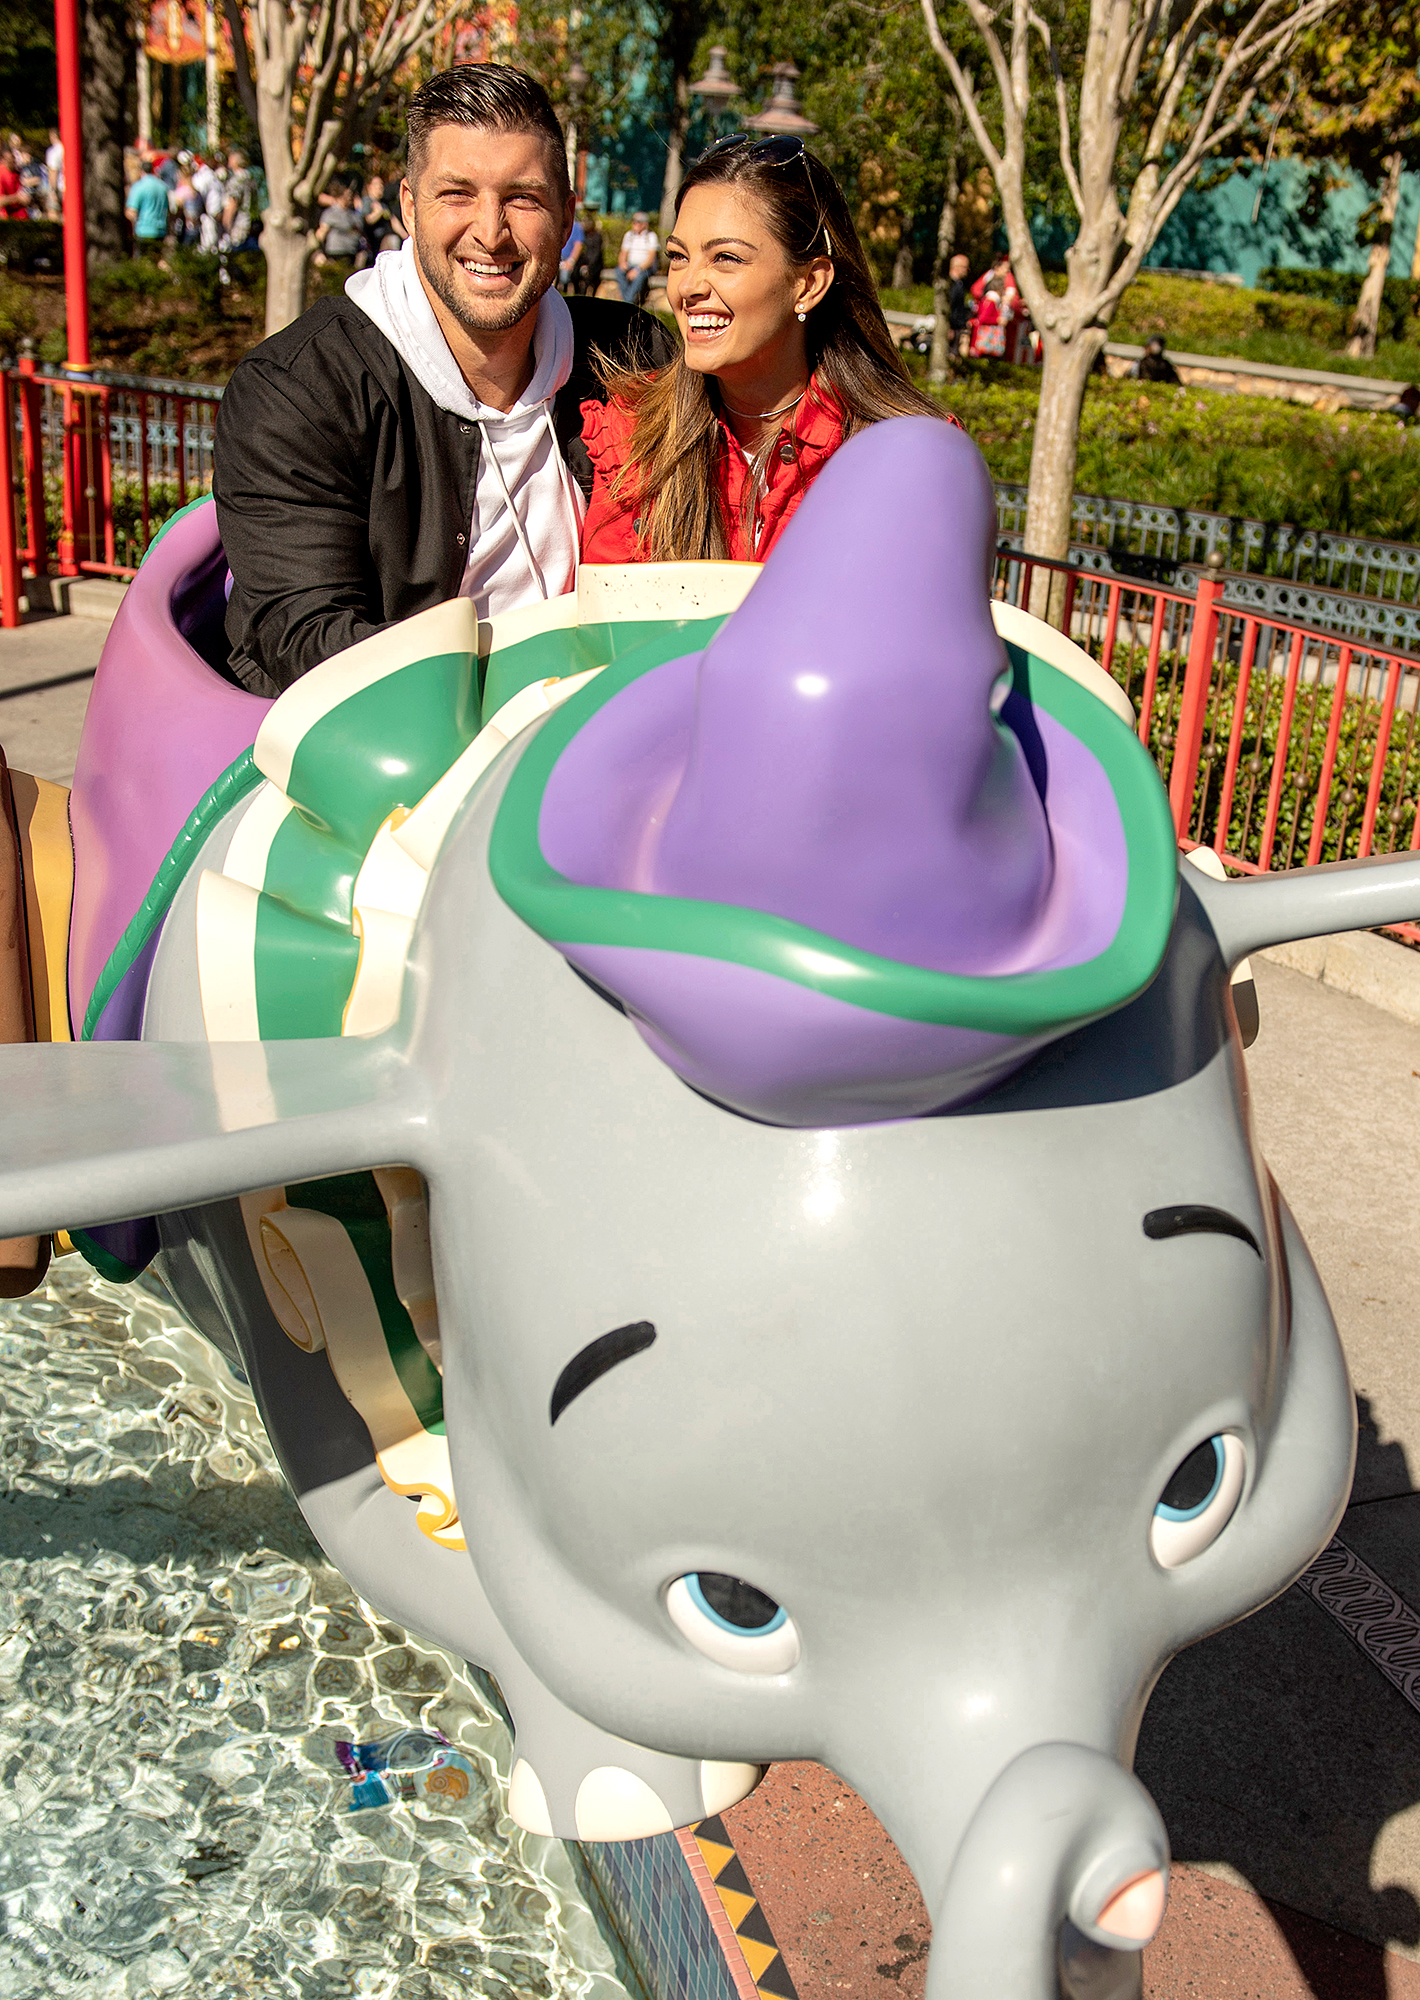 Tim-Tebow-and-Demi-Leigh-Nel-Peters-engaged-disney - Tebow and Nel-Peters took flight on the Dumbo ride at Magic Kingdom Park.